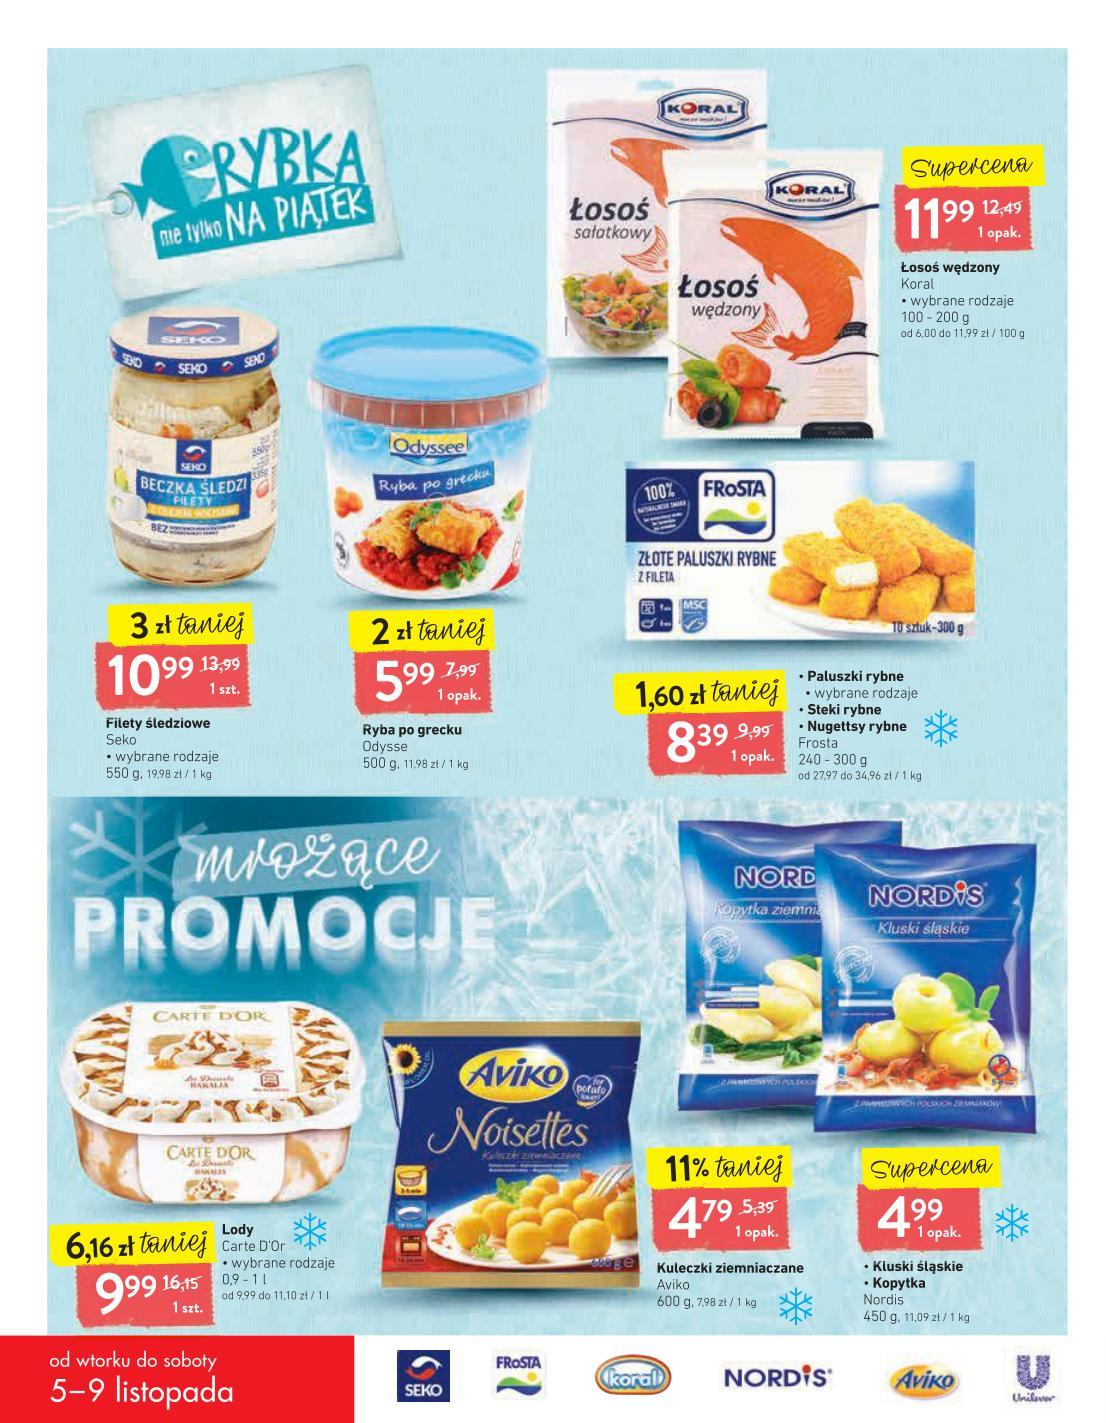 Gazetka promocyjna Intermarche do 09/11/2019 str.17